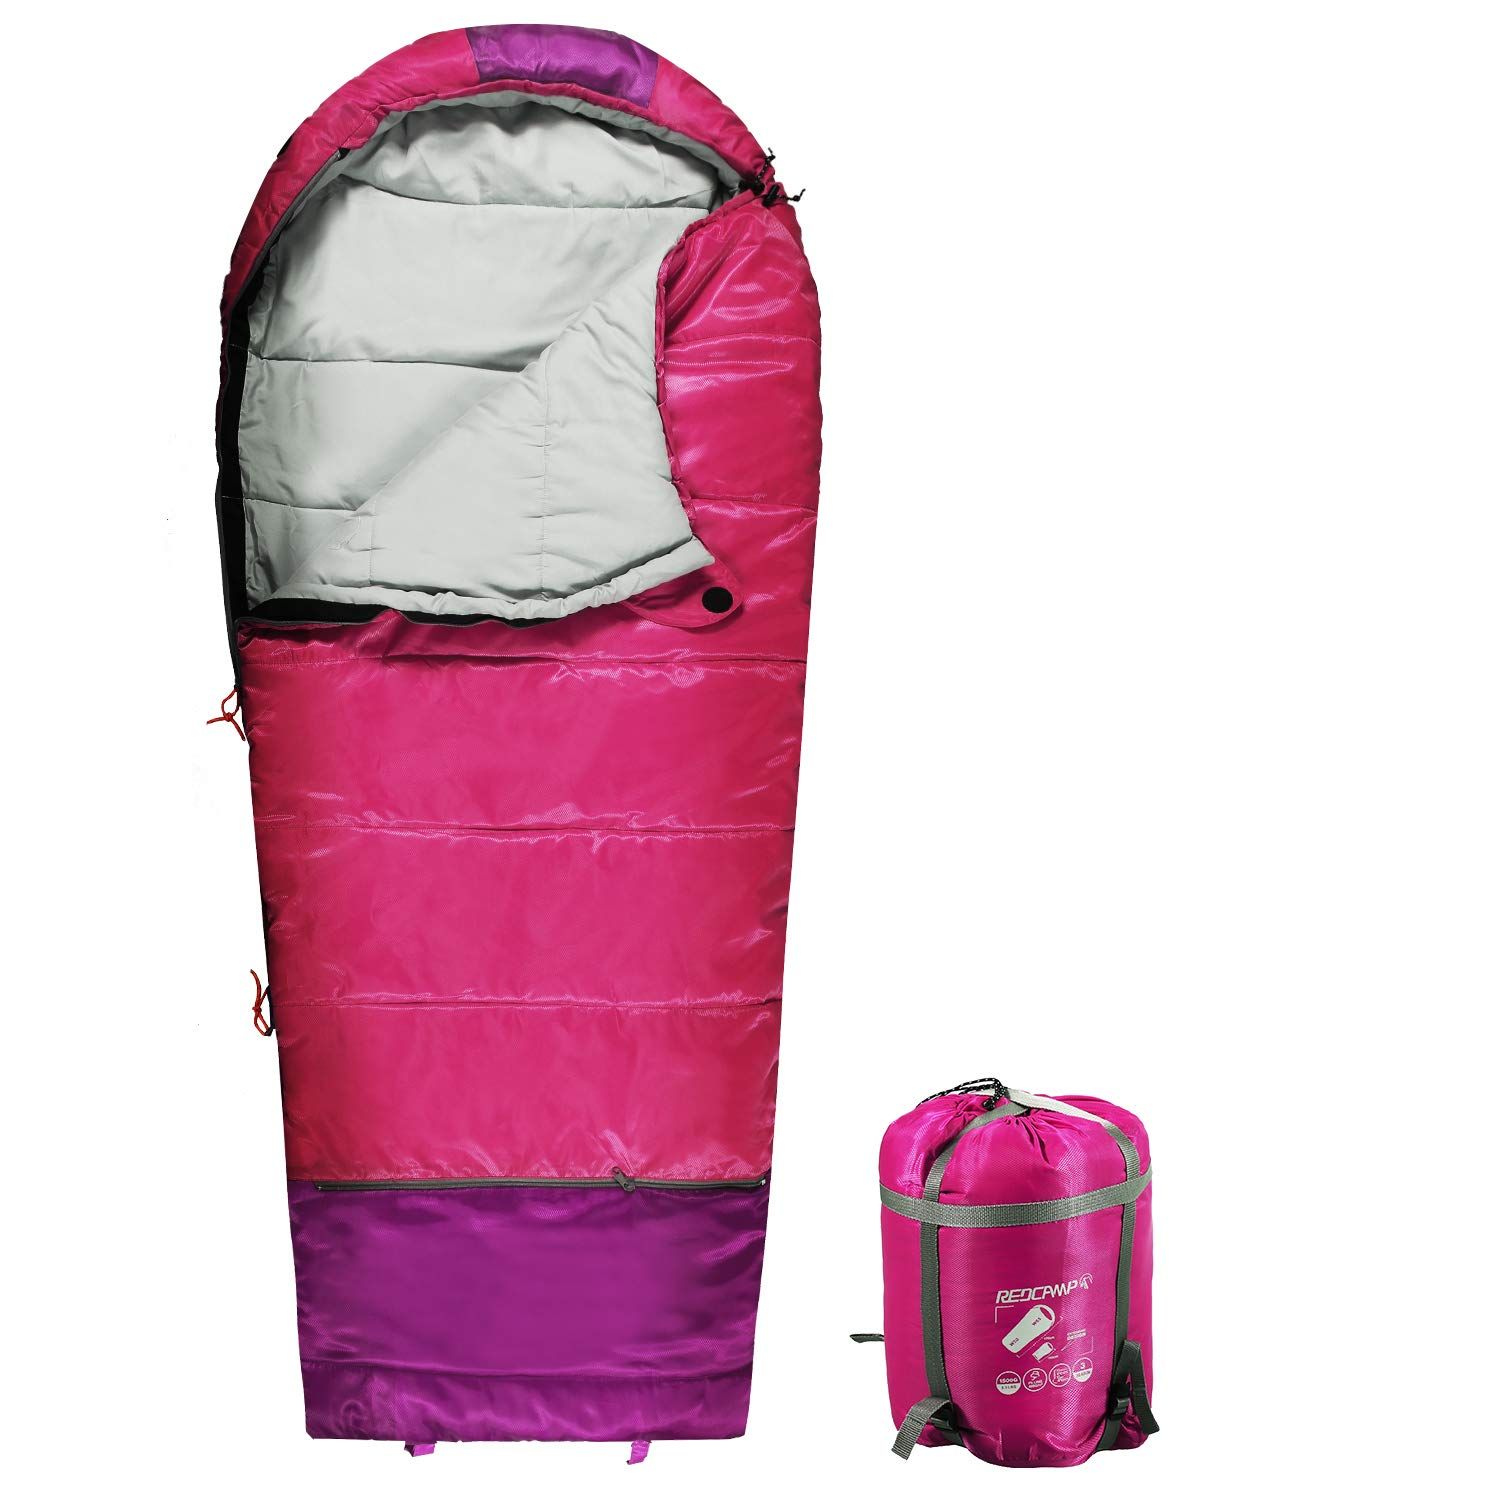 REDCAMP Kids Mummy Sleeping Bag for Camping Zipped Small, 40 Degree 3 Season Cold Weather Fit Boys,Girls & Teens (Pink with 2.4lbs Filling) by REDCAMP